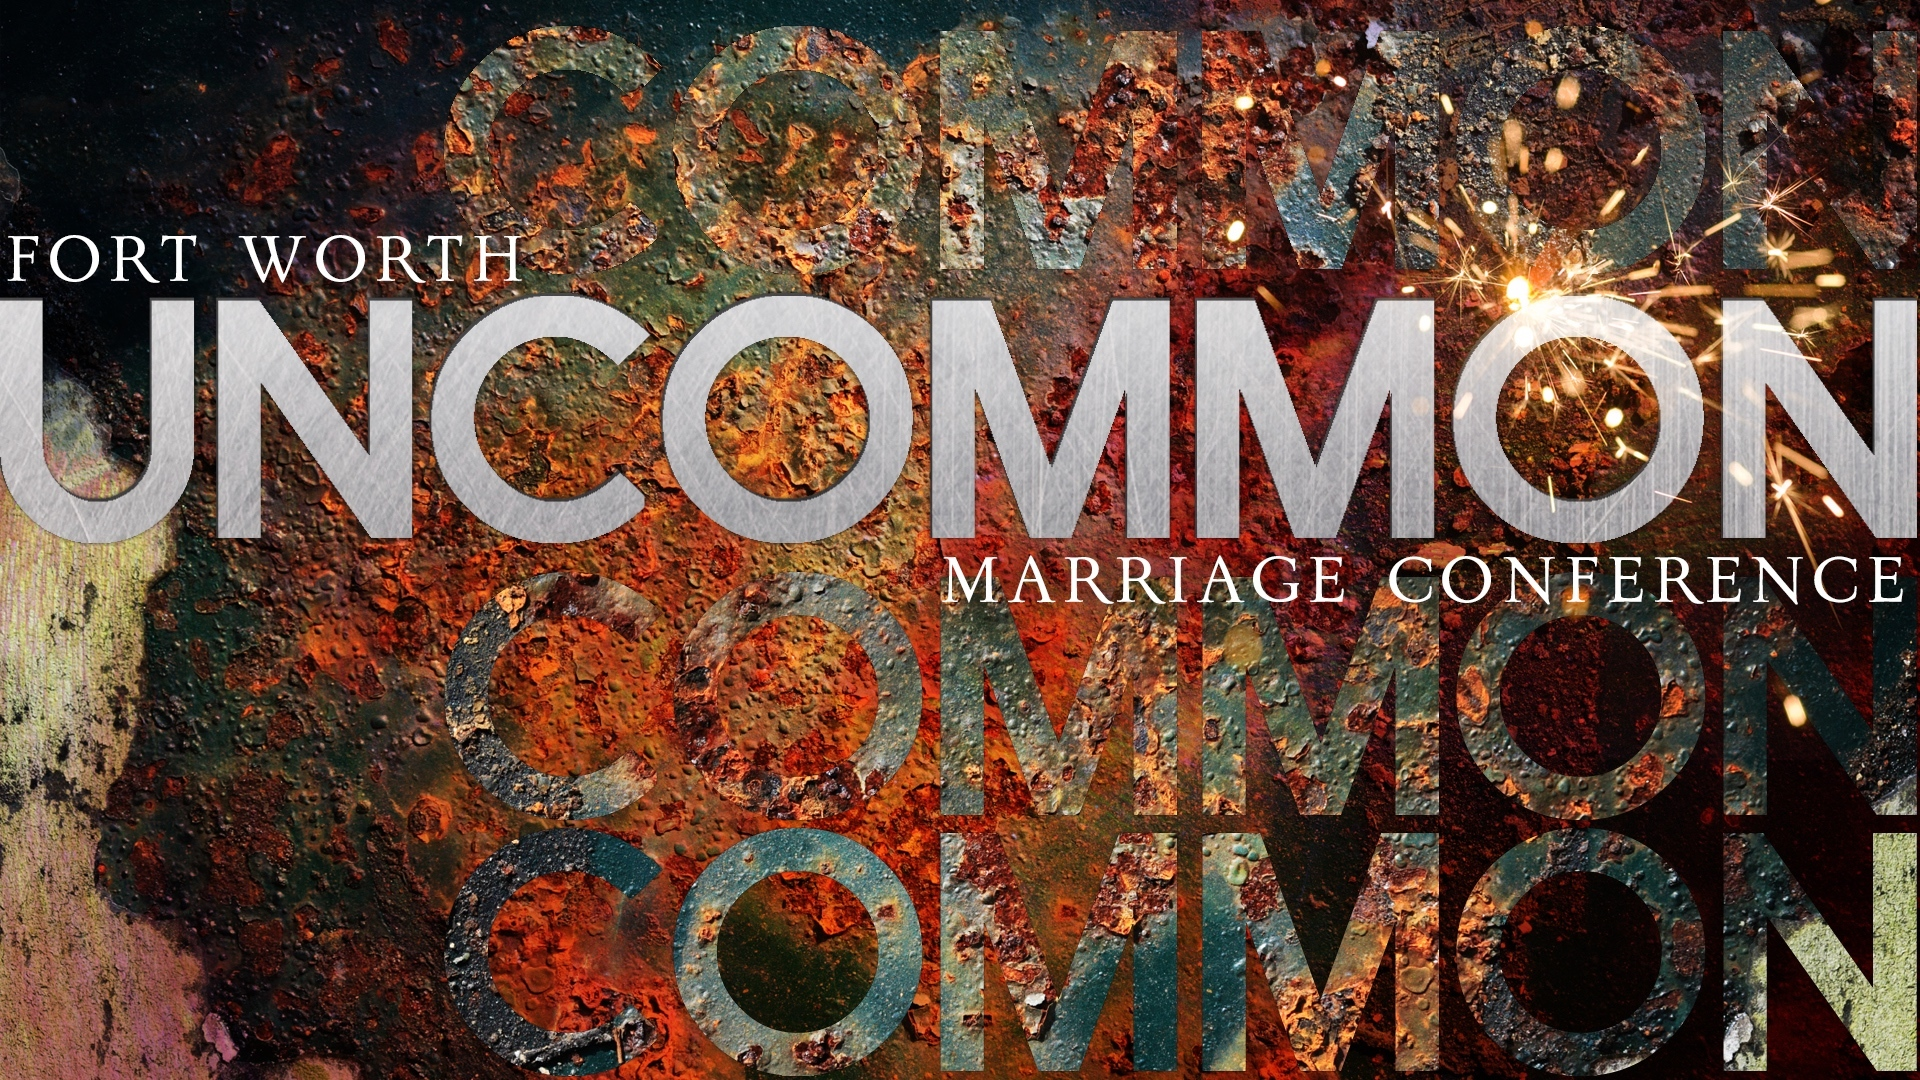 Fort Worth Uncommon Marriage Conference - Dallas